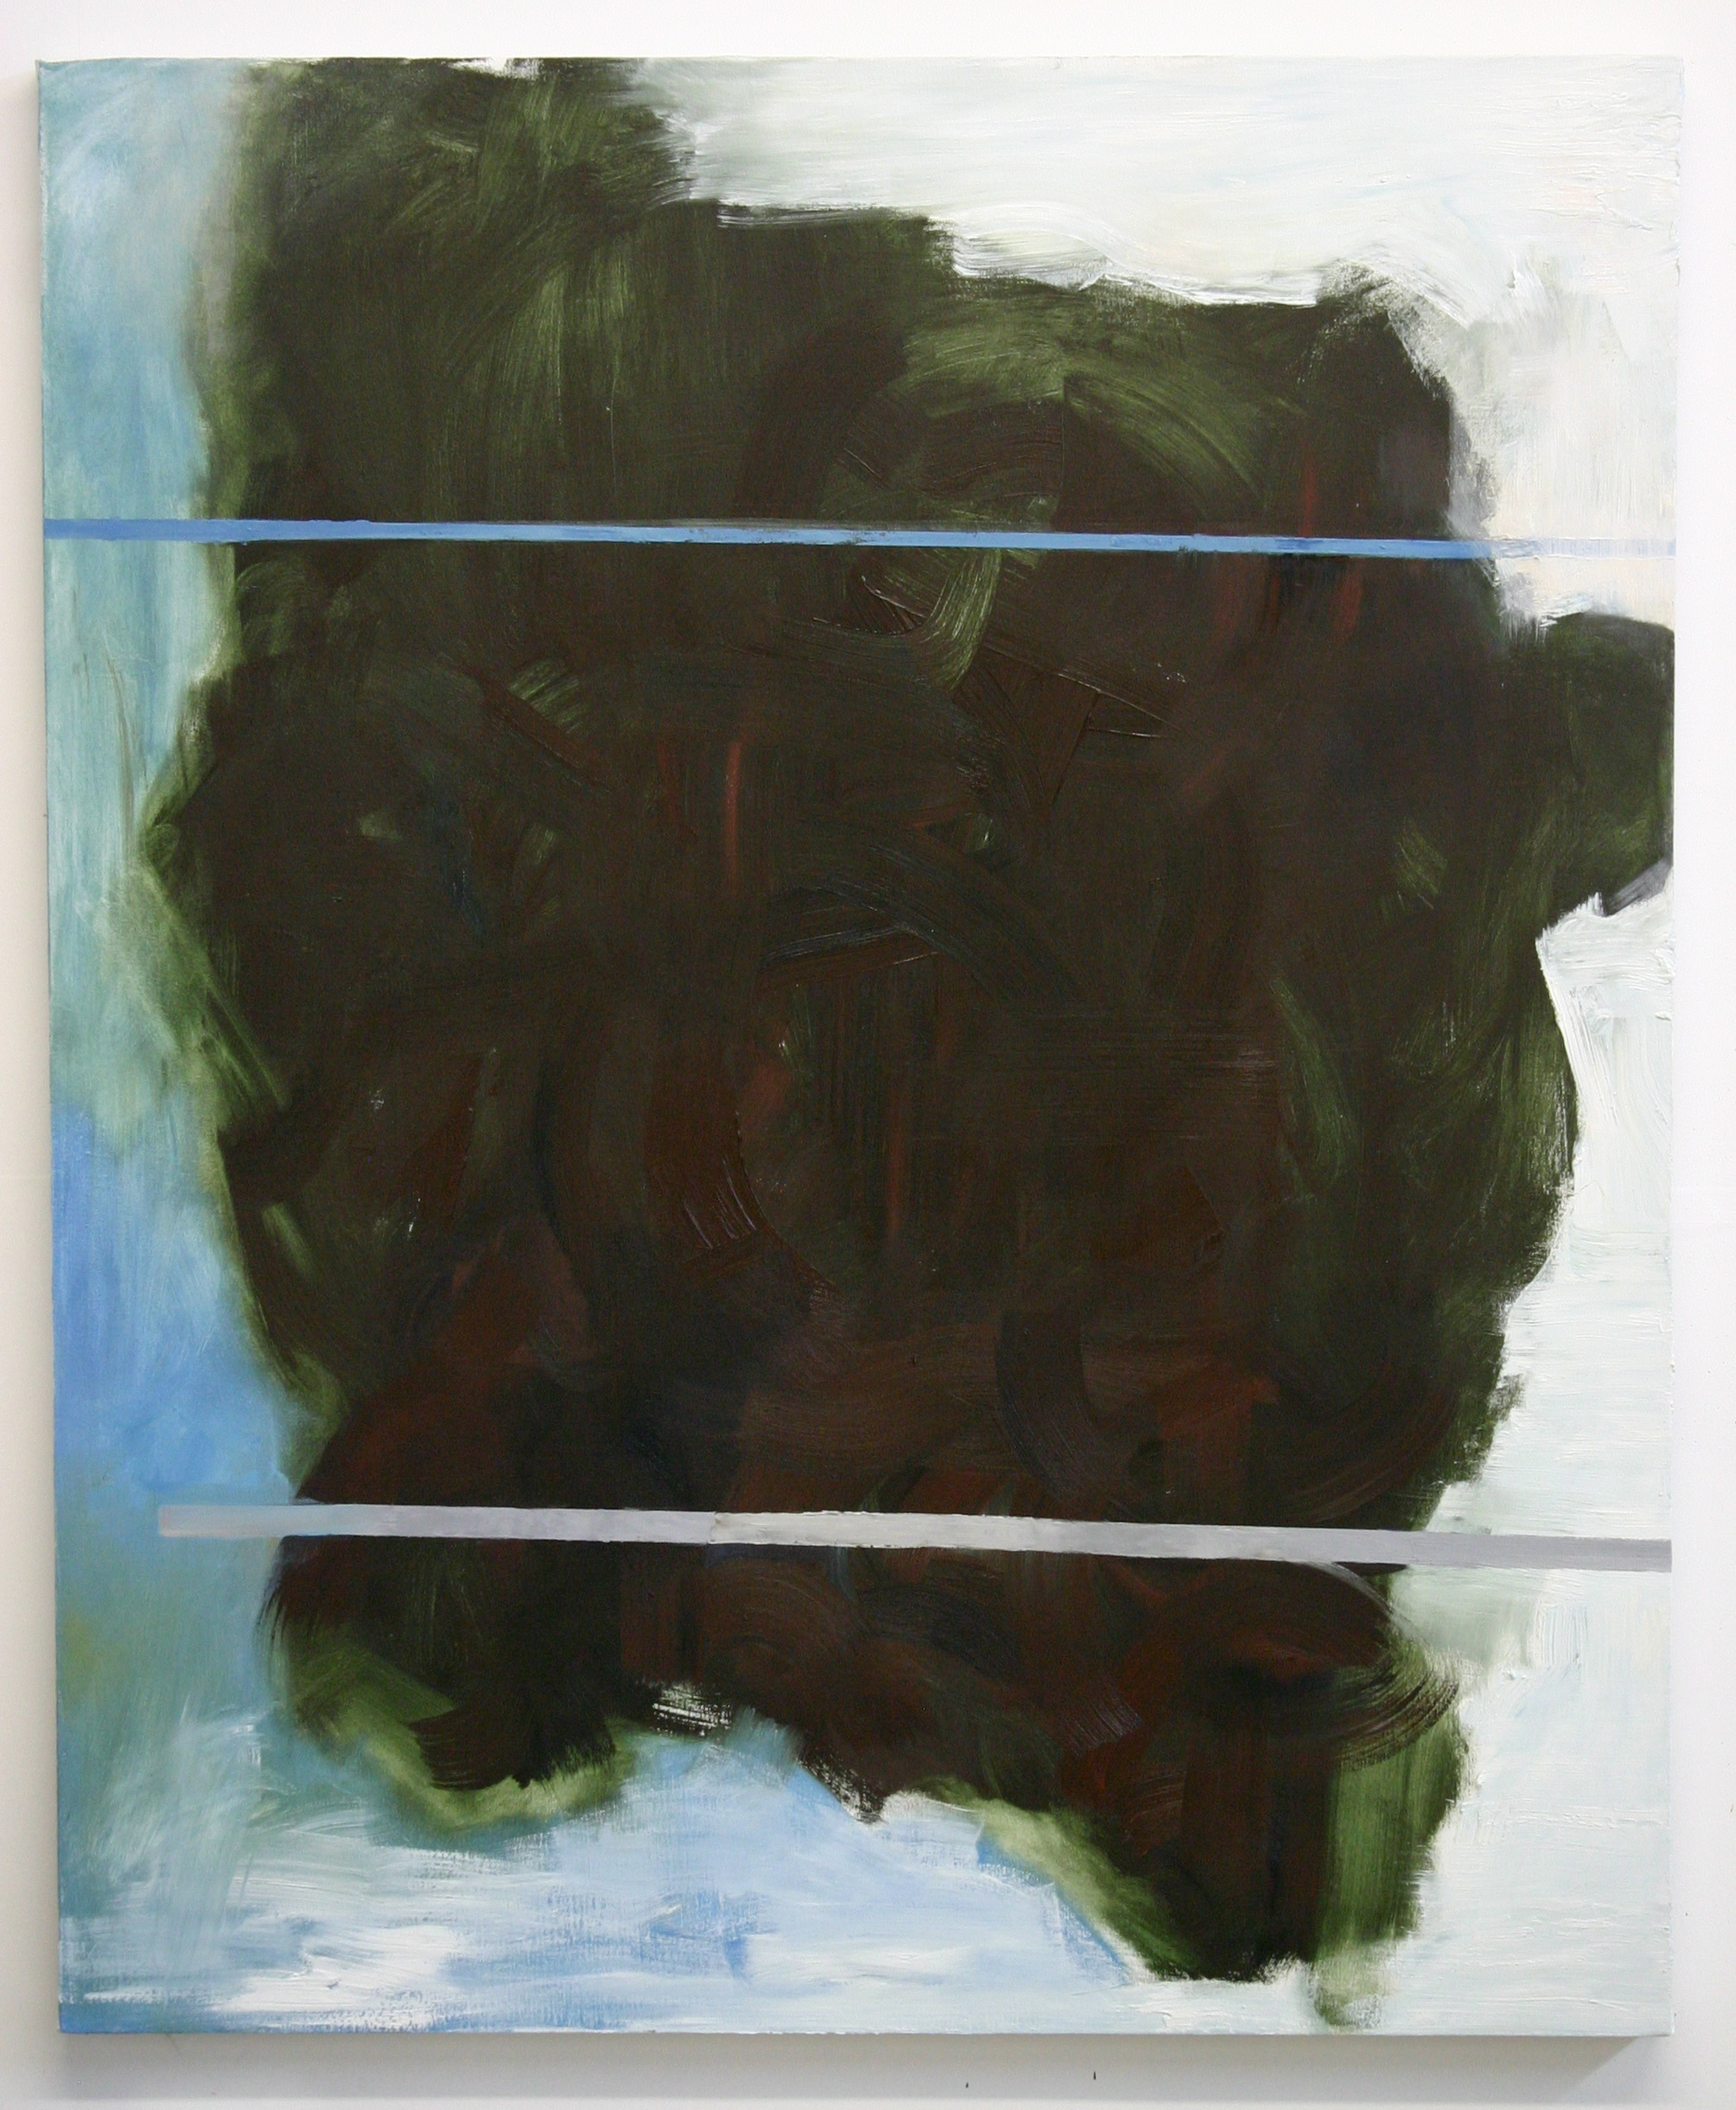 Toro, 2012, oil on canvas, 44 x 36 inches